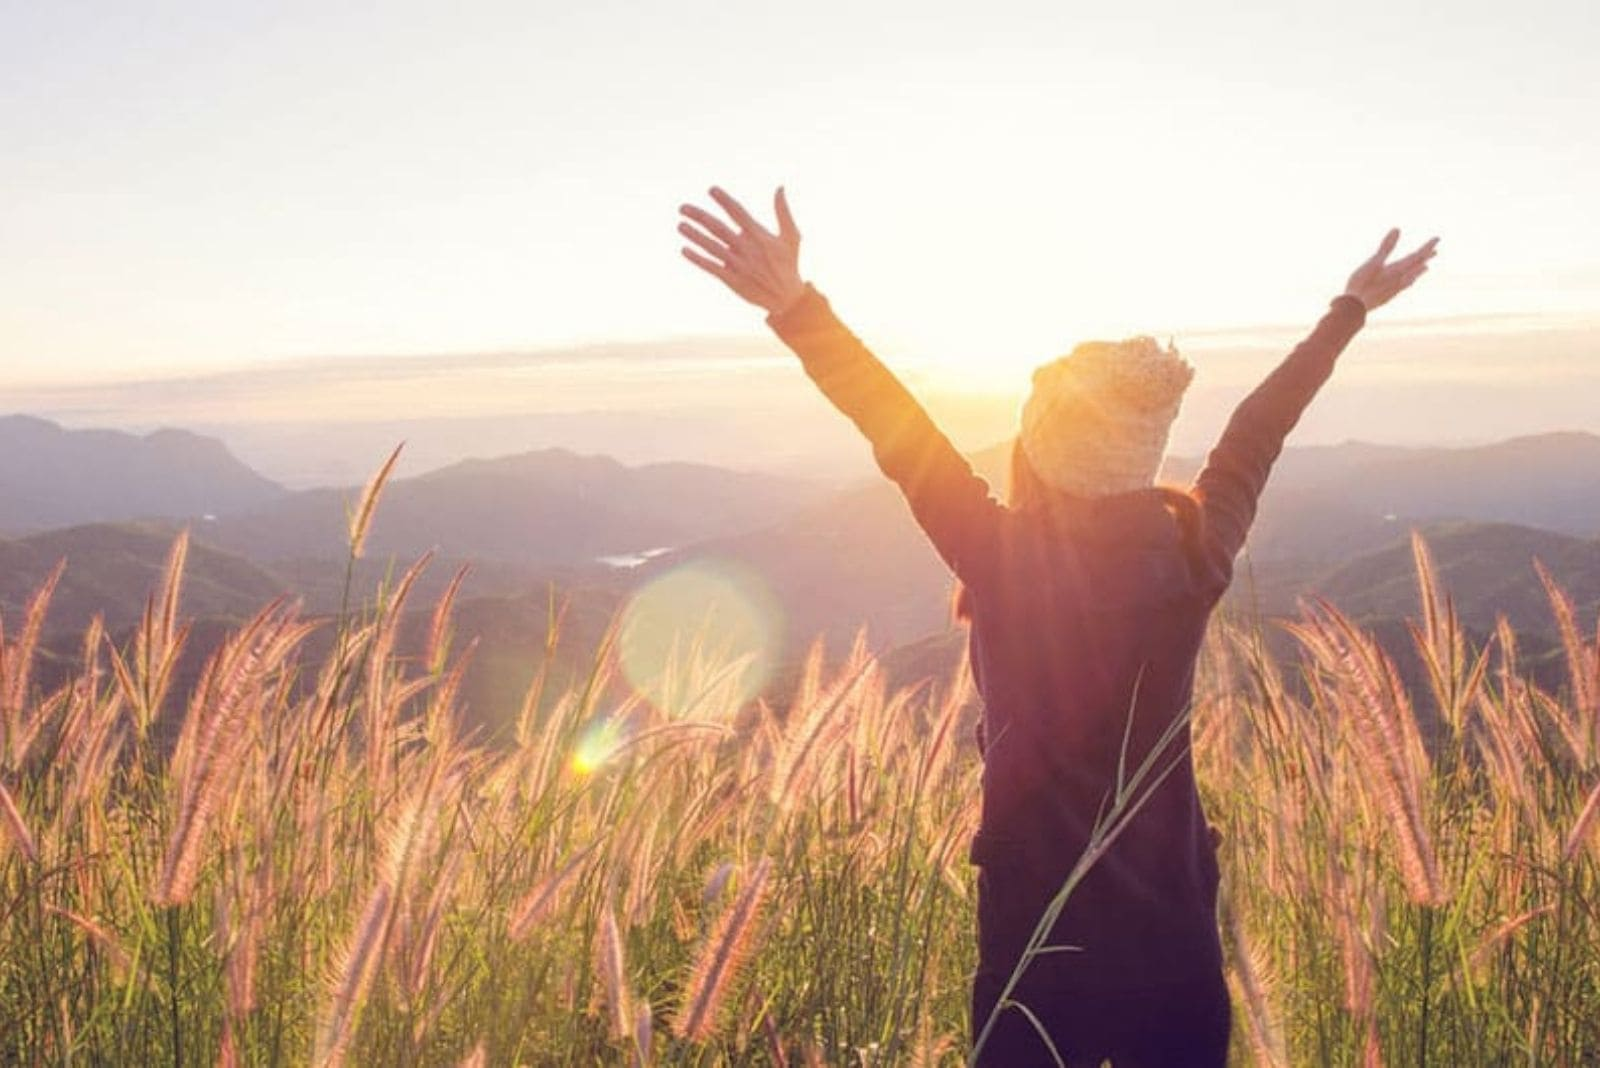 the woman stands with outstretched arms in the field